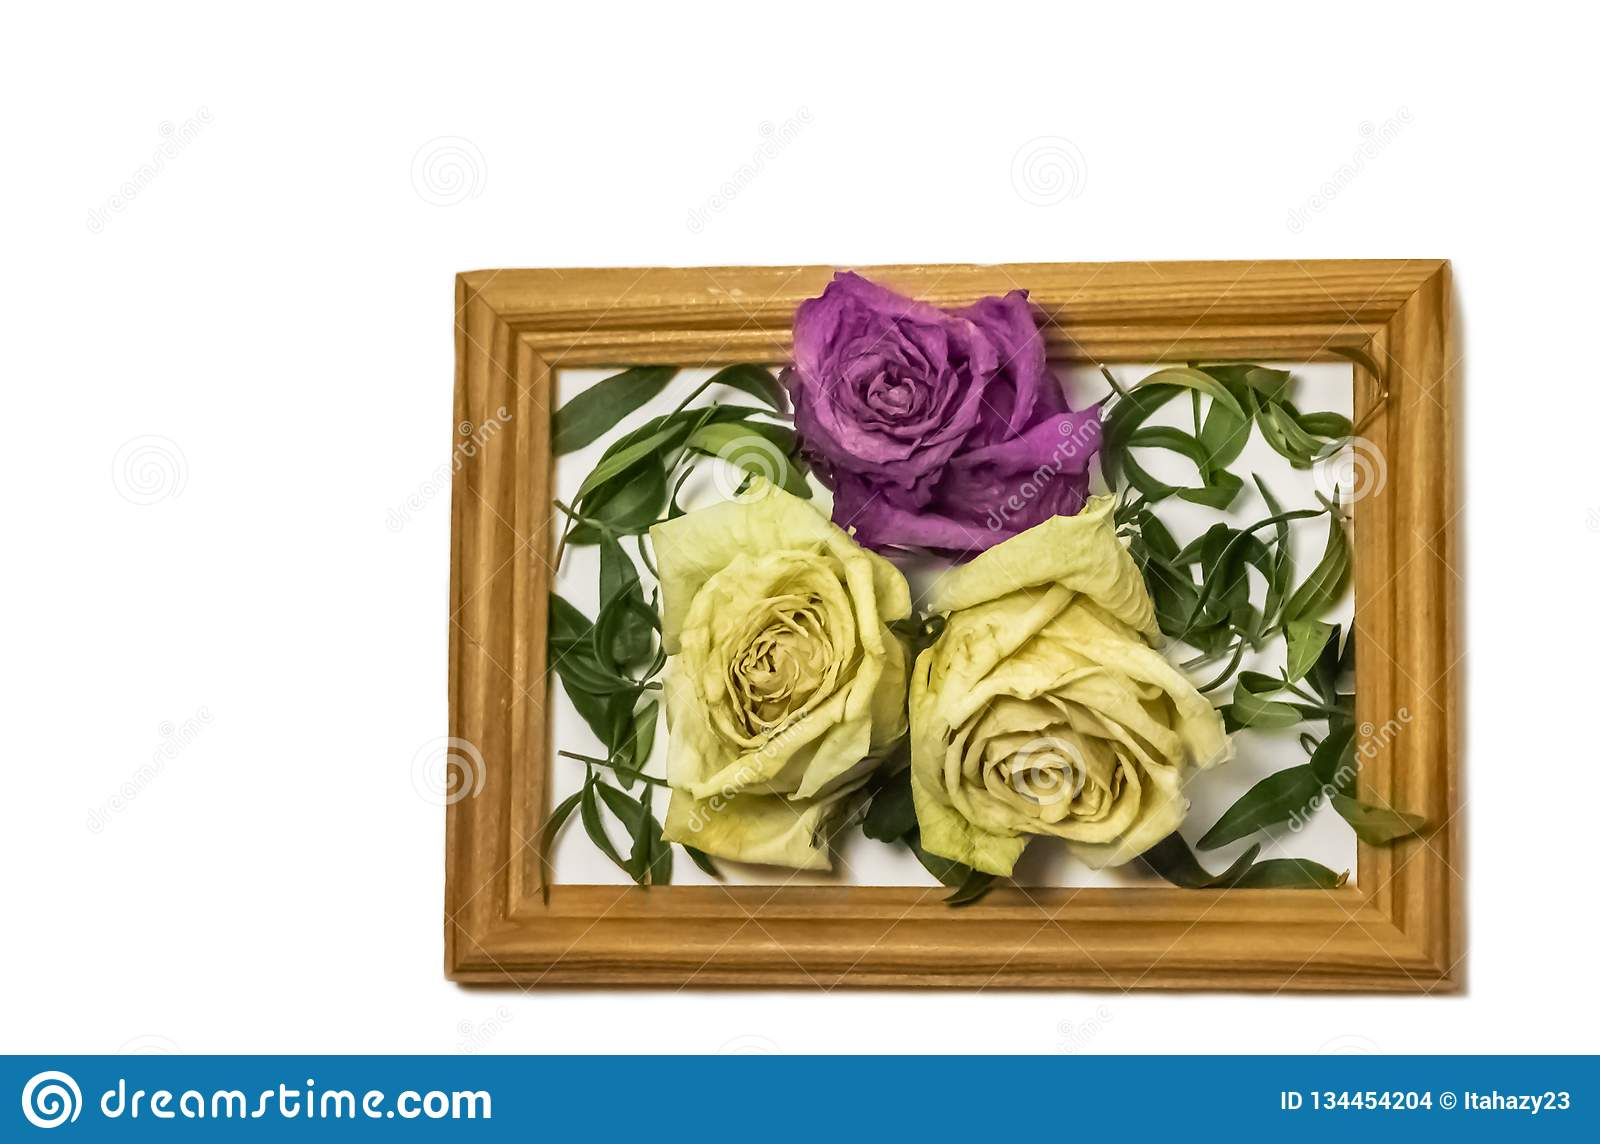 Three dry roses with leaves, two white roses, one pink rose, inside a wooden frame